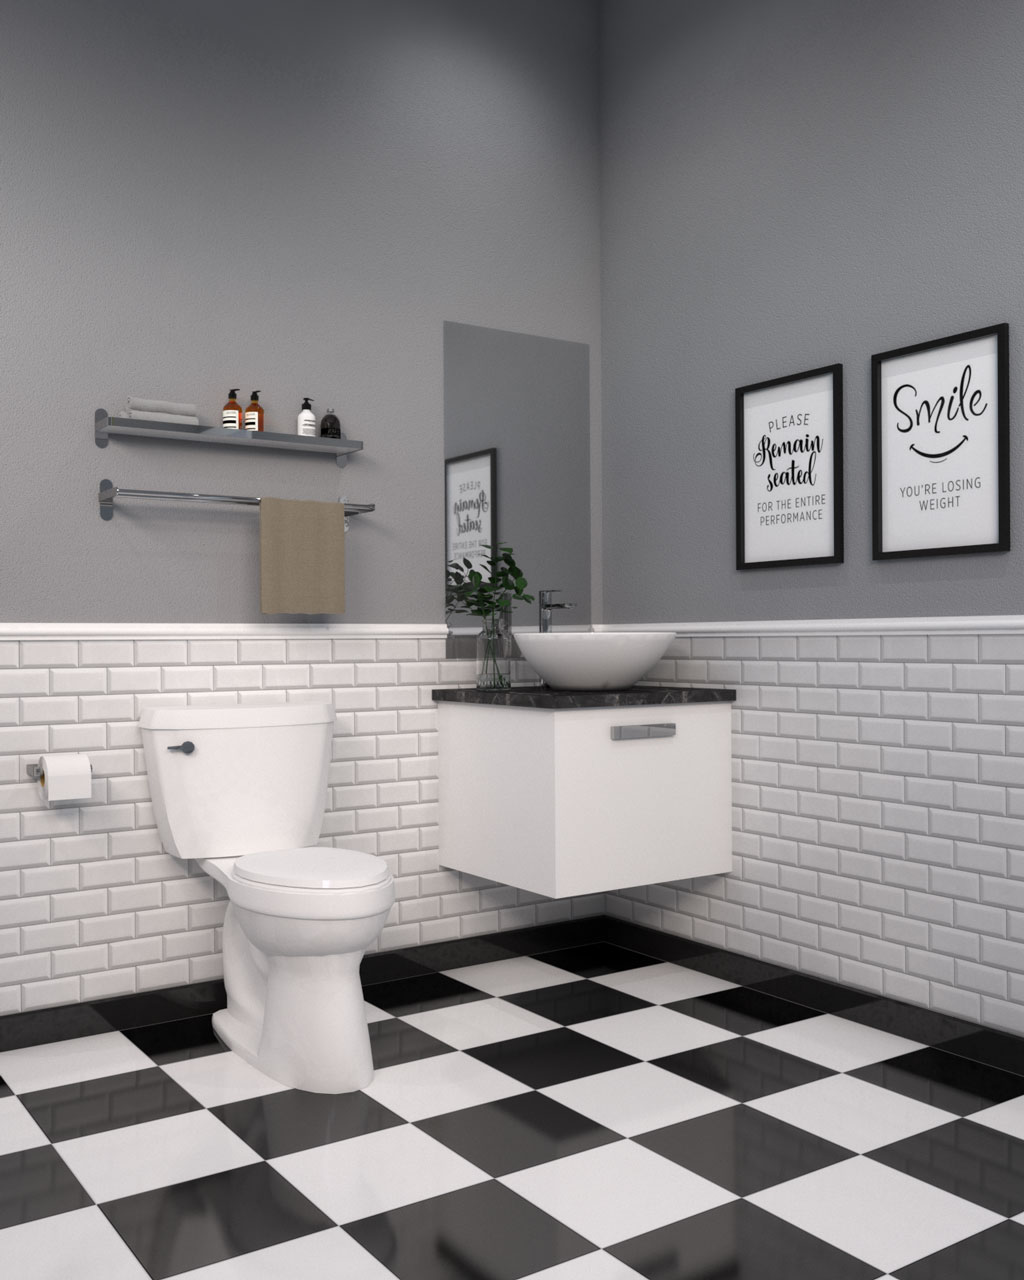 Black and white checker style tile floor with white and gray walls in bathroom